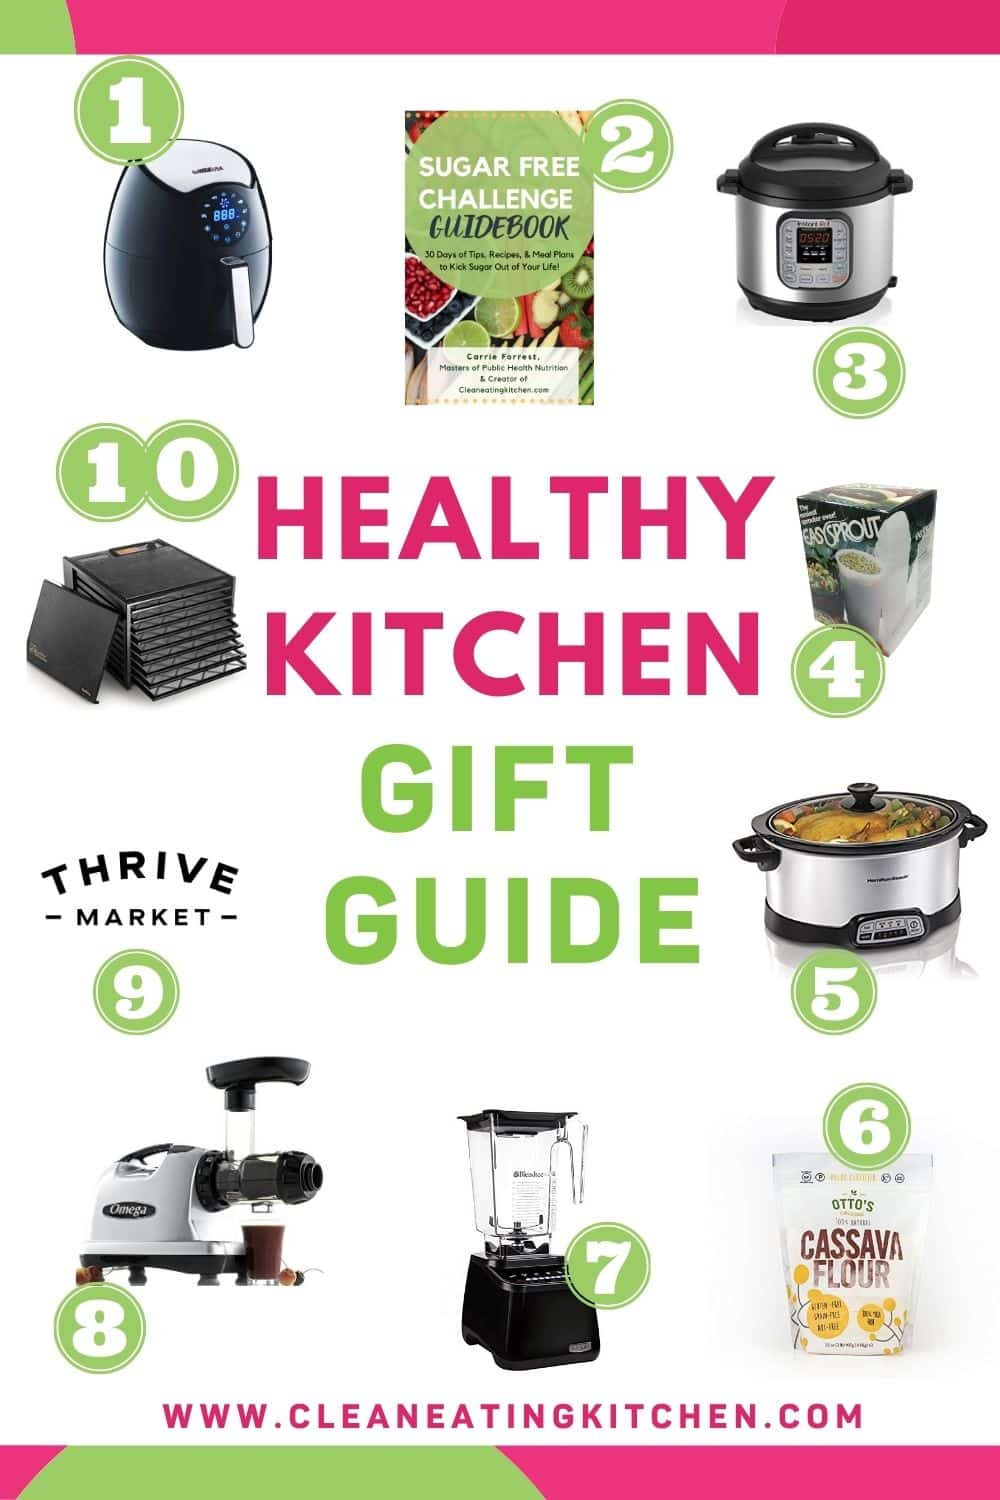 Infographic with Healthy Kitchen Gift Guide including unique and practical gifts for anyone who loves eating healthy foods or who wants to eat healthier.